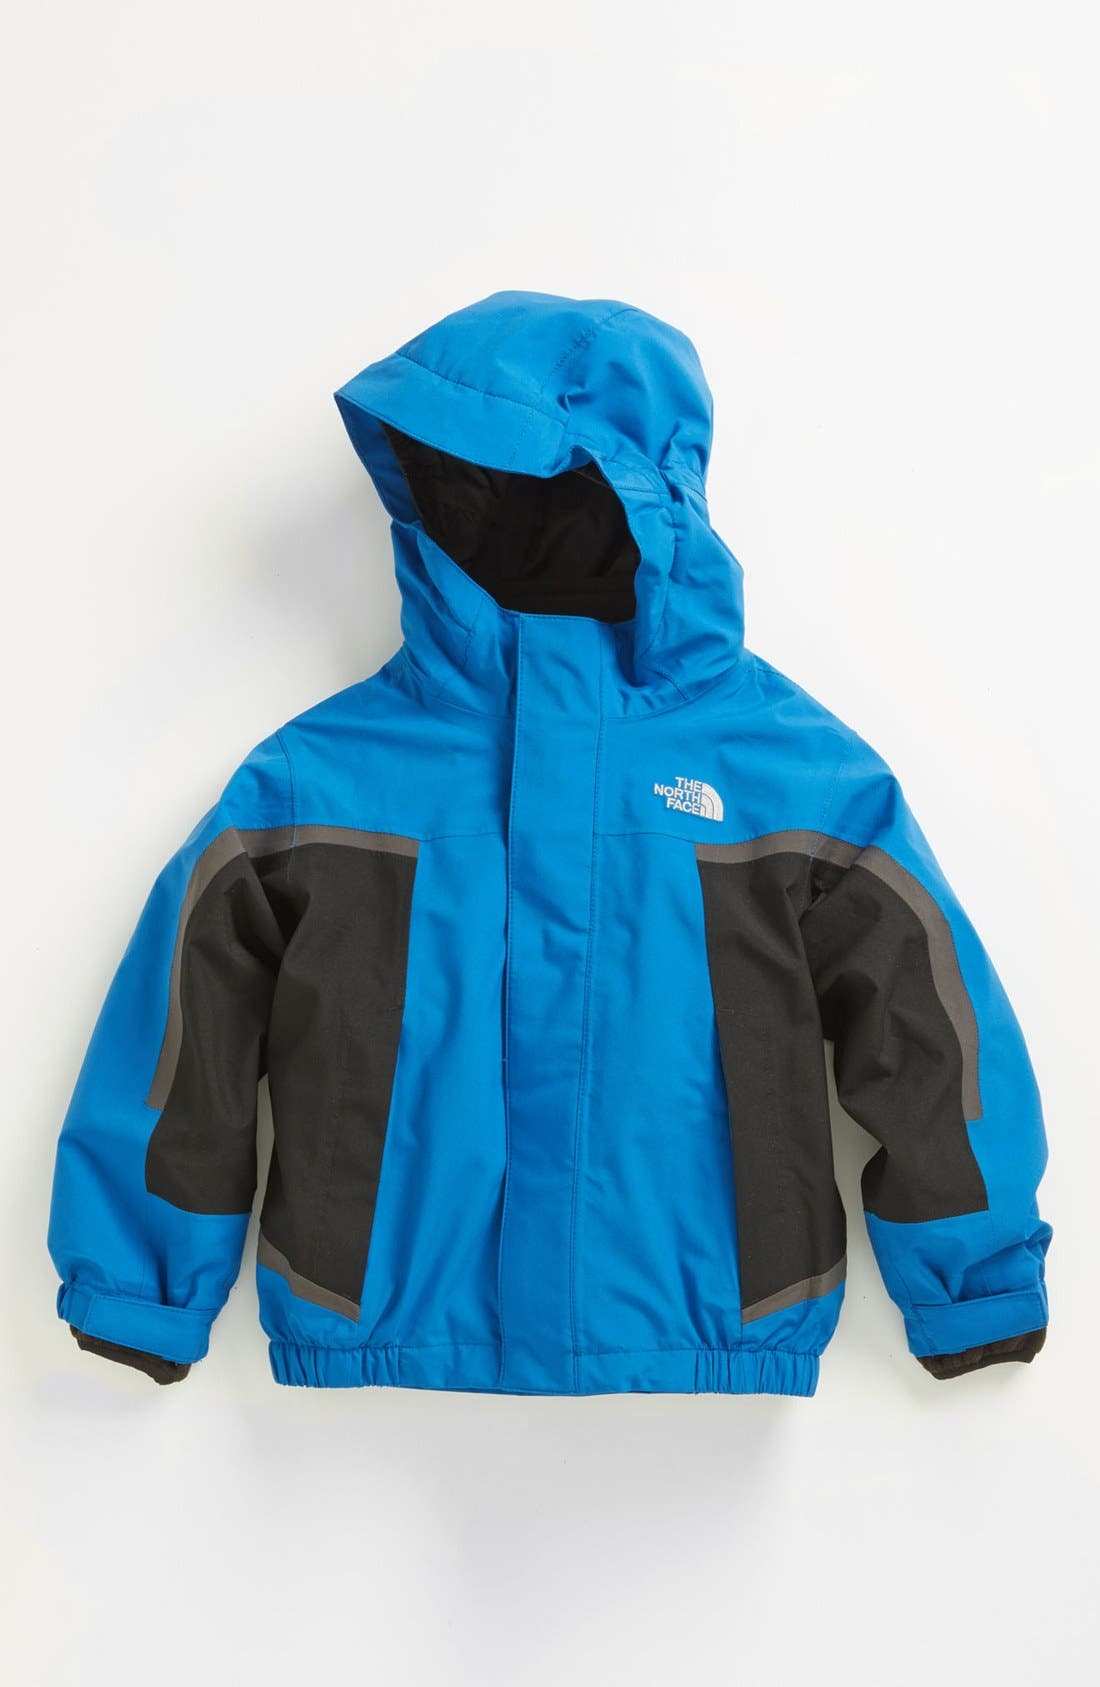 Alternate Image 1 Selected - The North Face 'Nimbostratus' Jacket (Toddler Boys)